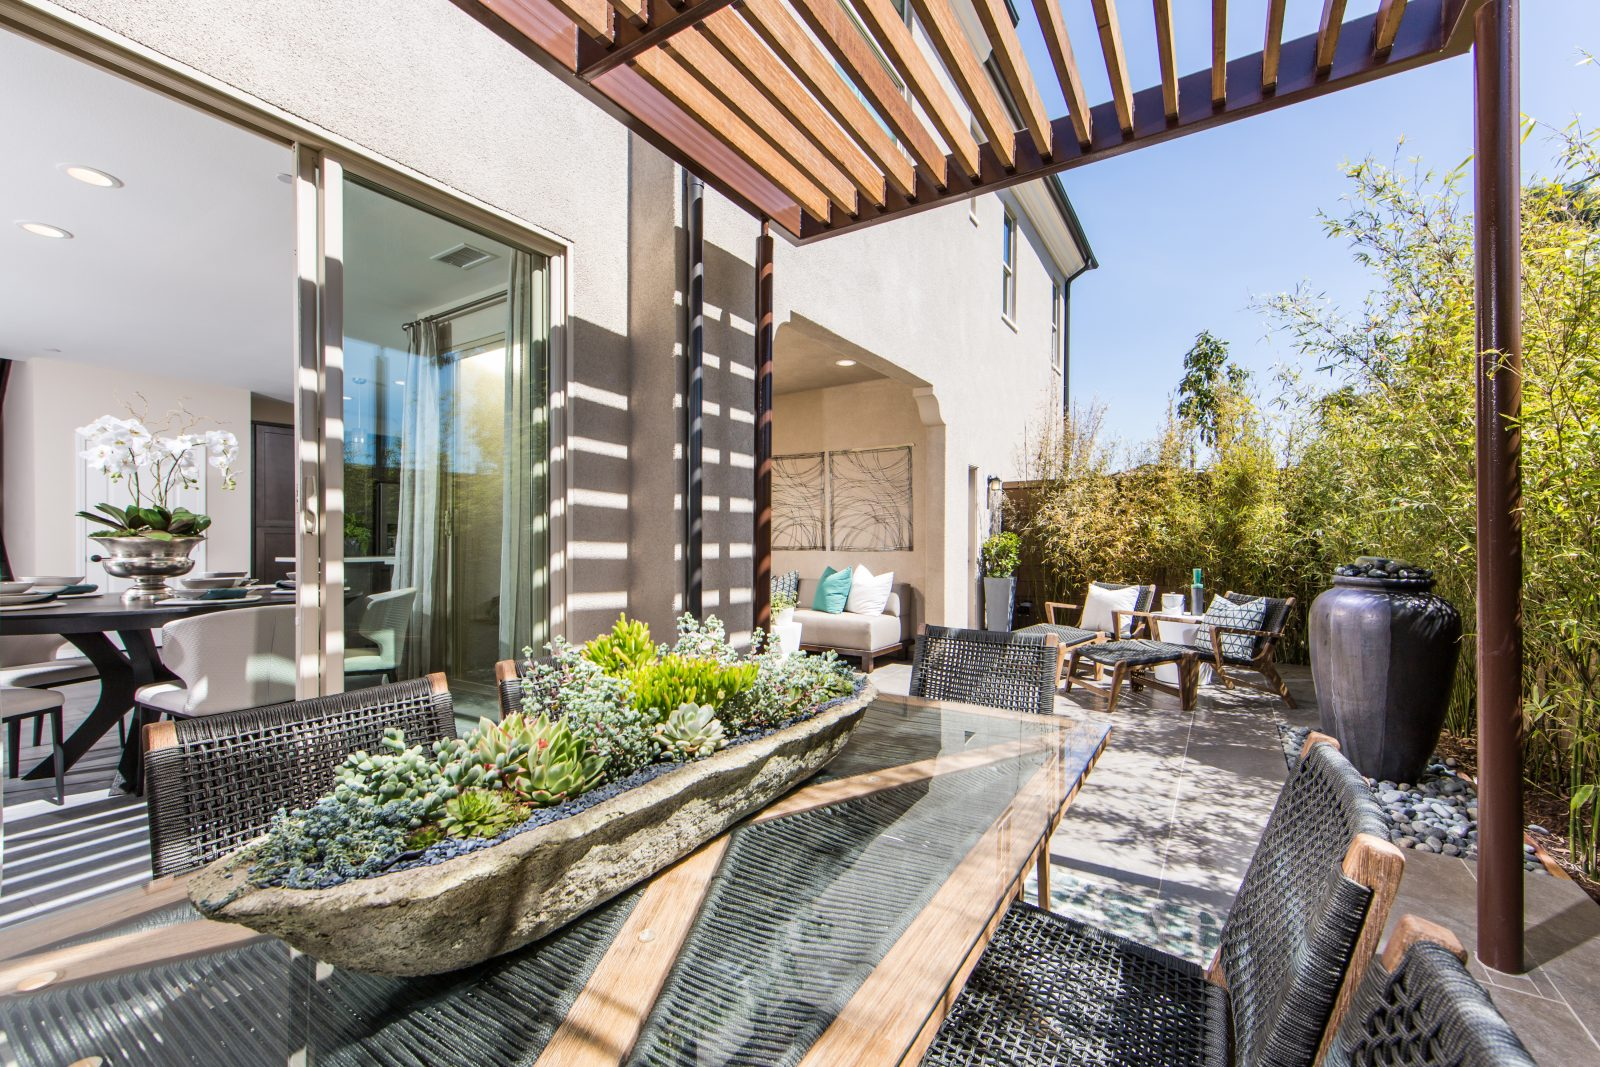 Outdoor Room and Private Yard in Irvine Townhomes for Sale